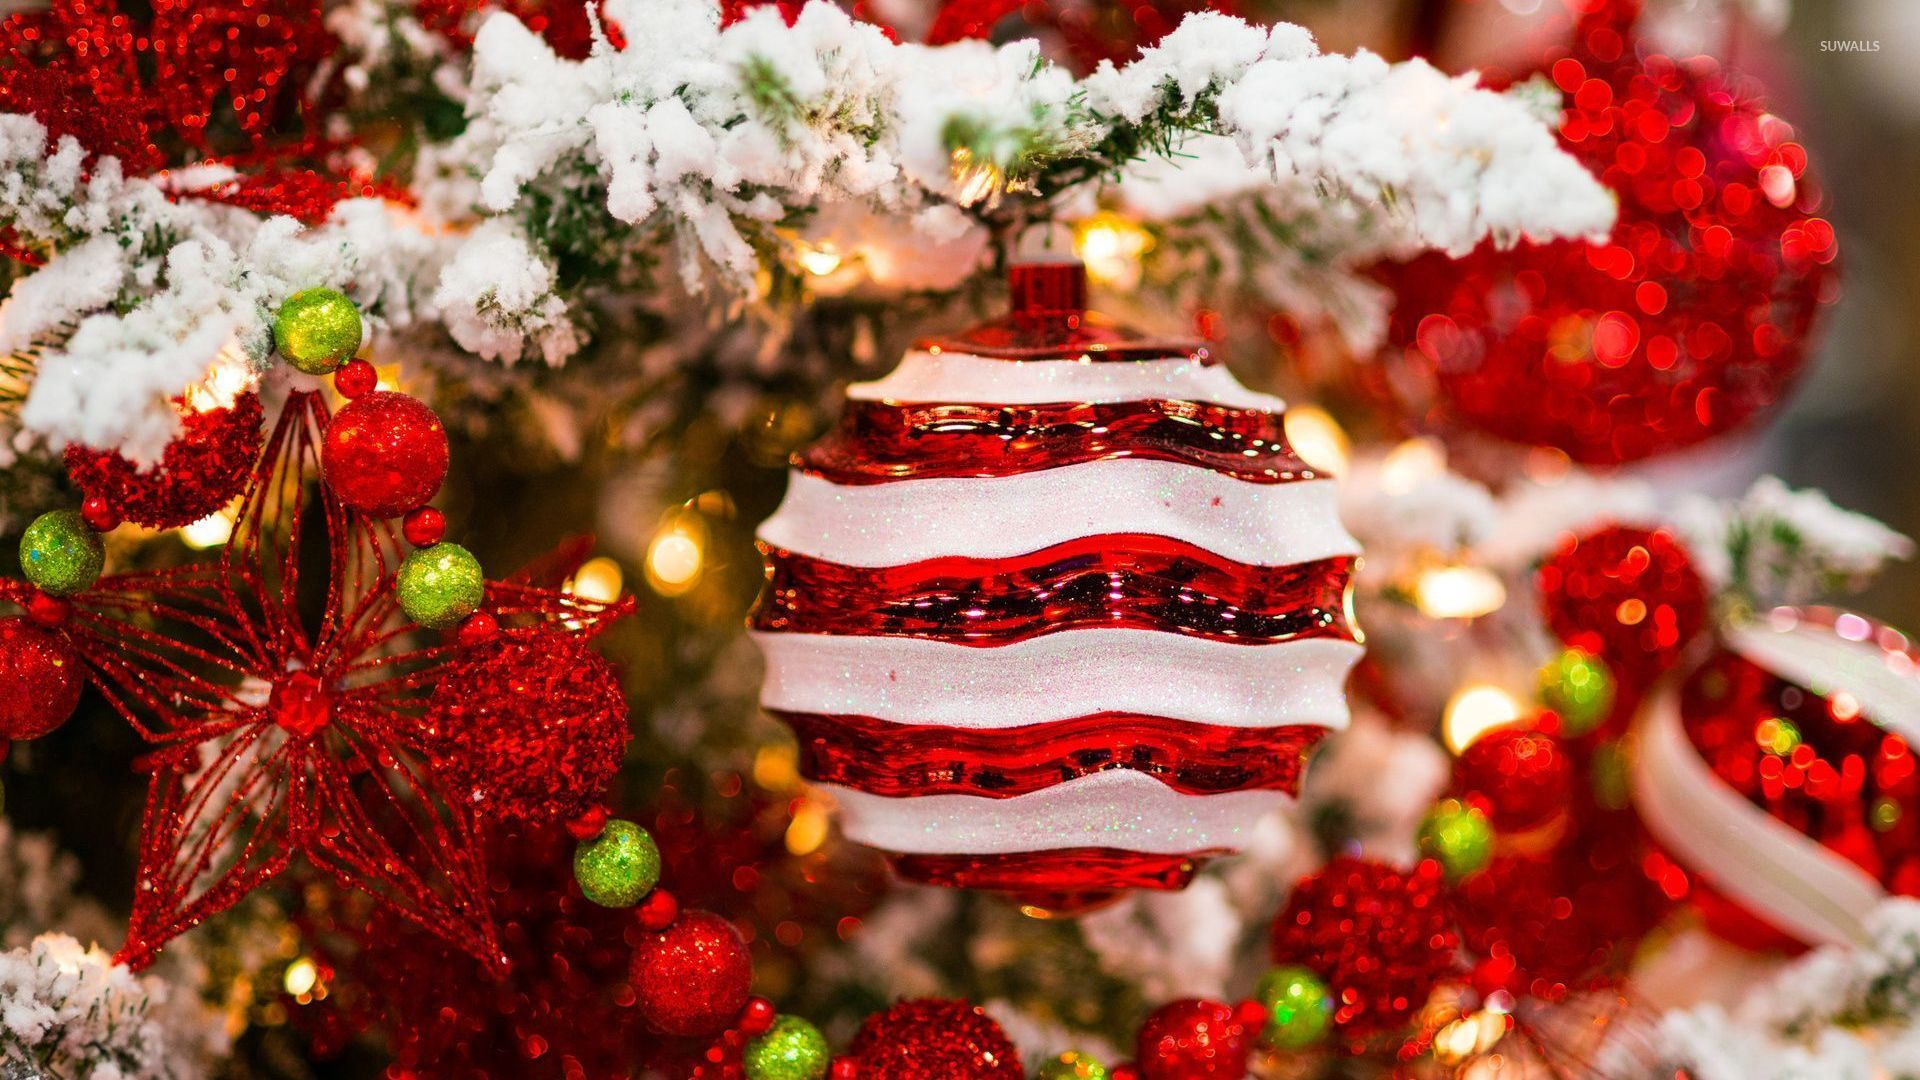 Red and white decorations in the snowy christmas tree wallpaper holiday wallpapers 52001 - Red and white decorations ...